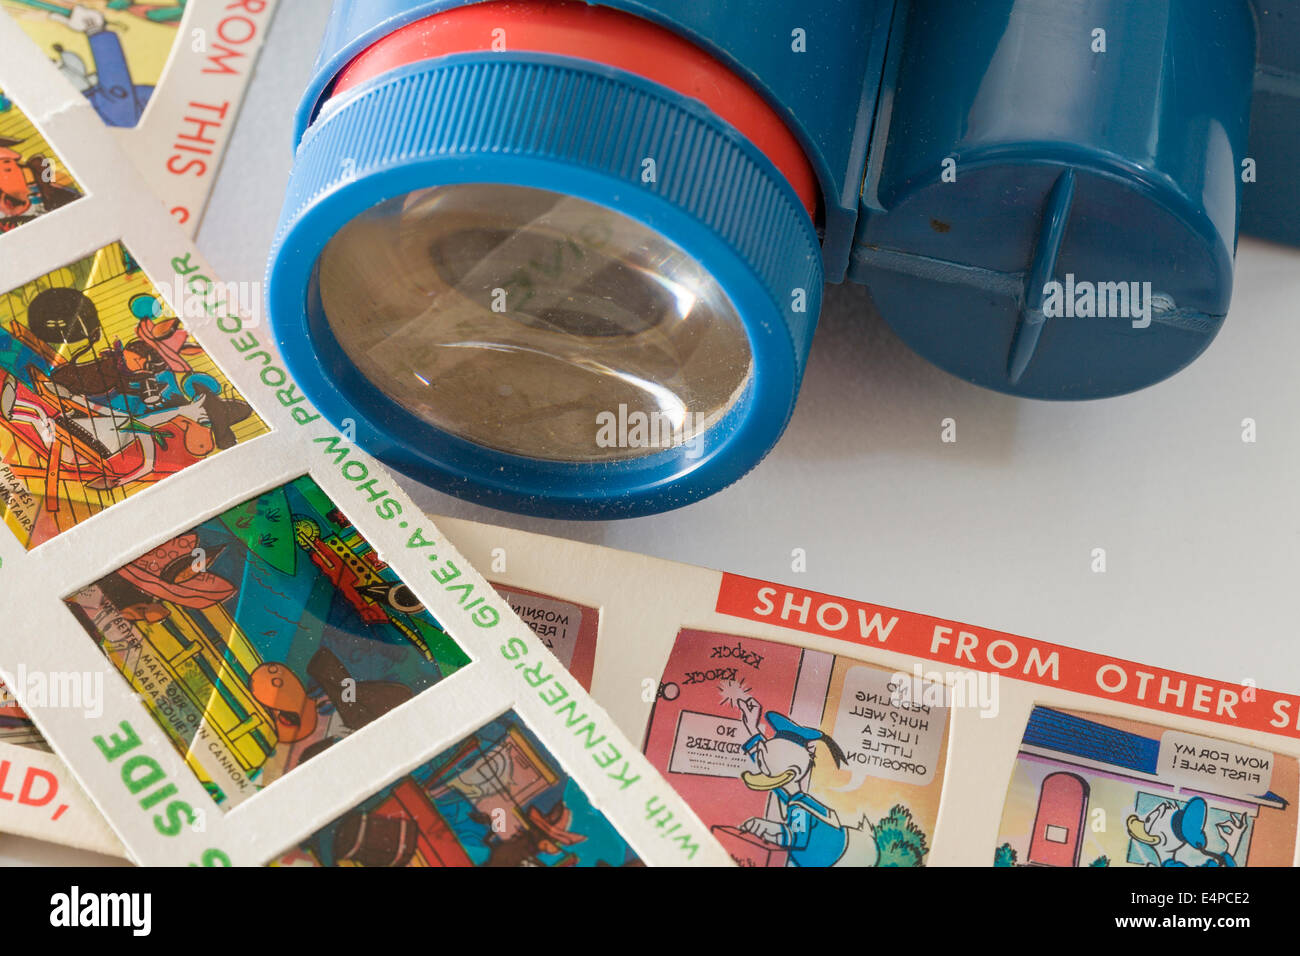 Kenner's Give-a-Show Projector. Battery operated toy projector with a selection of cartoon images for children - Stock Image